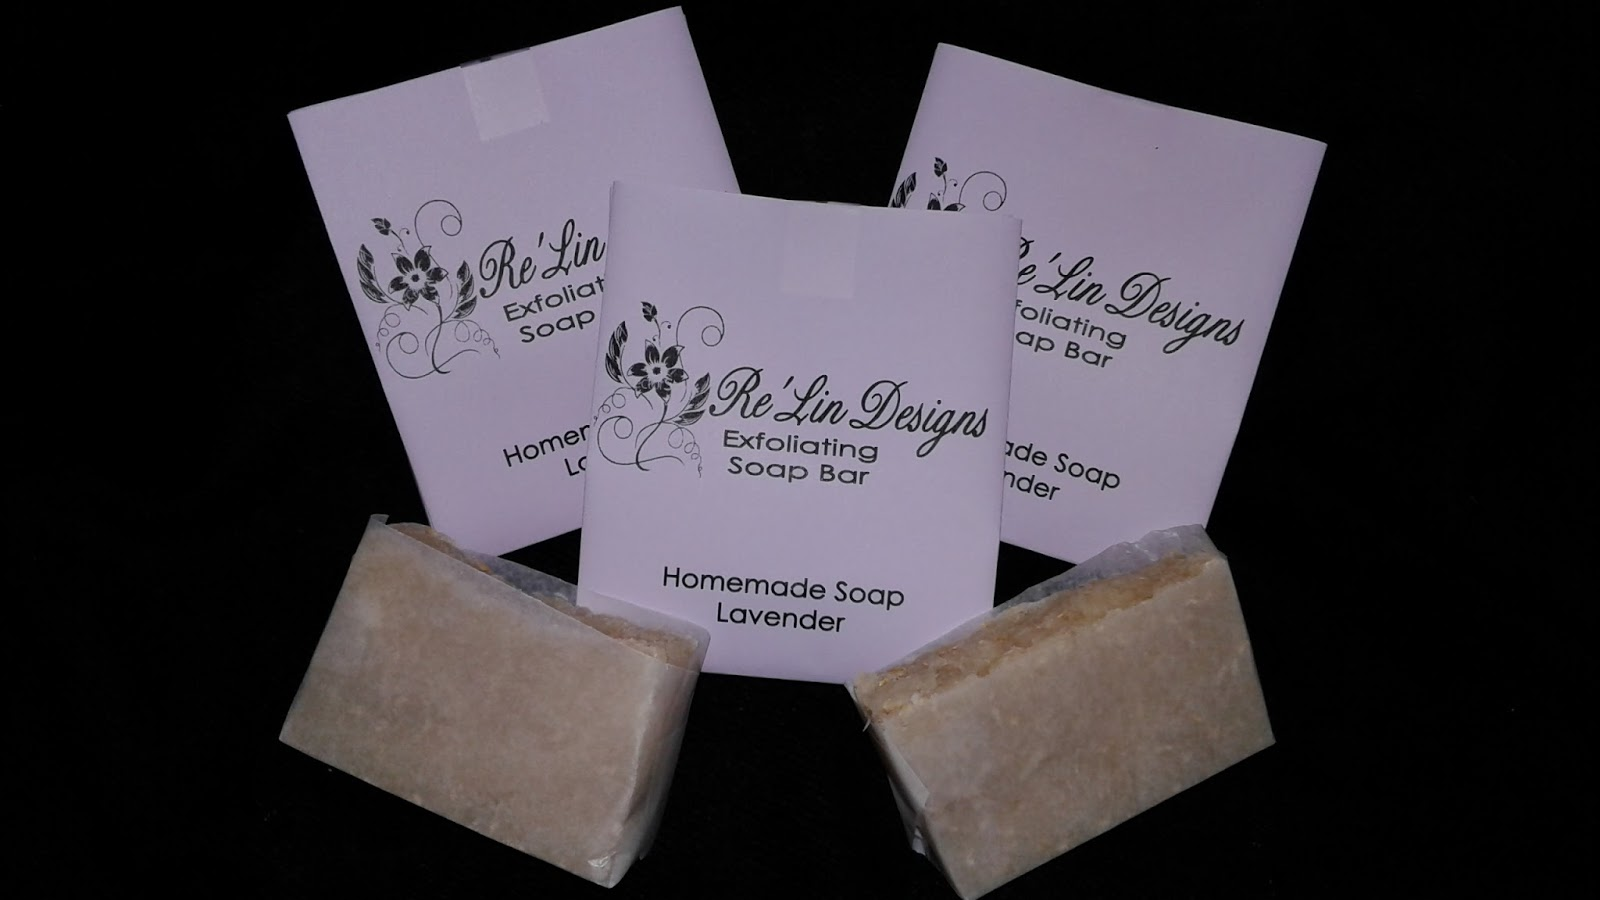 Homemade moisturizing lavender soap with oatmeal flakes embedded in the soap to give you an exfoliating shower experience while moisturizing your skin.